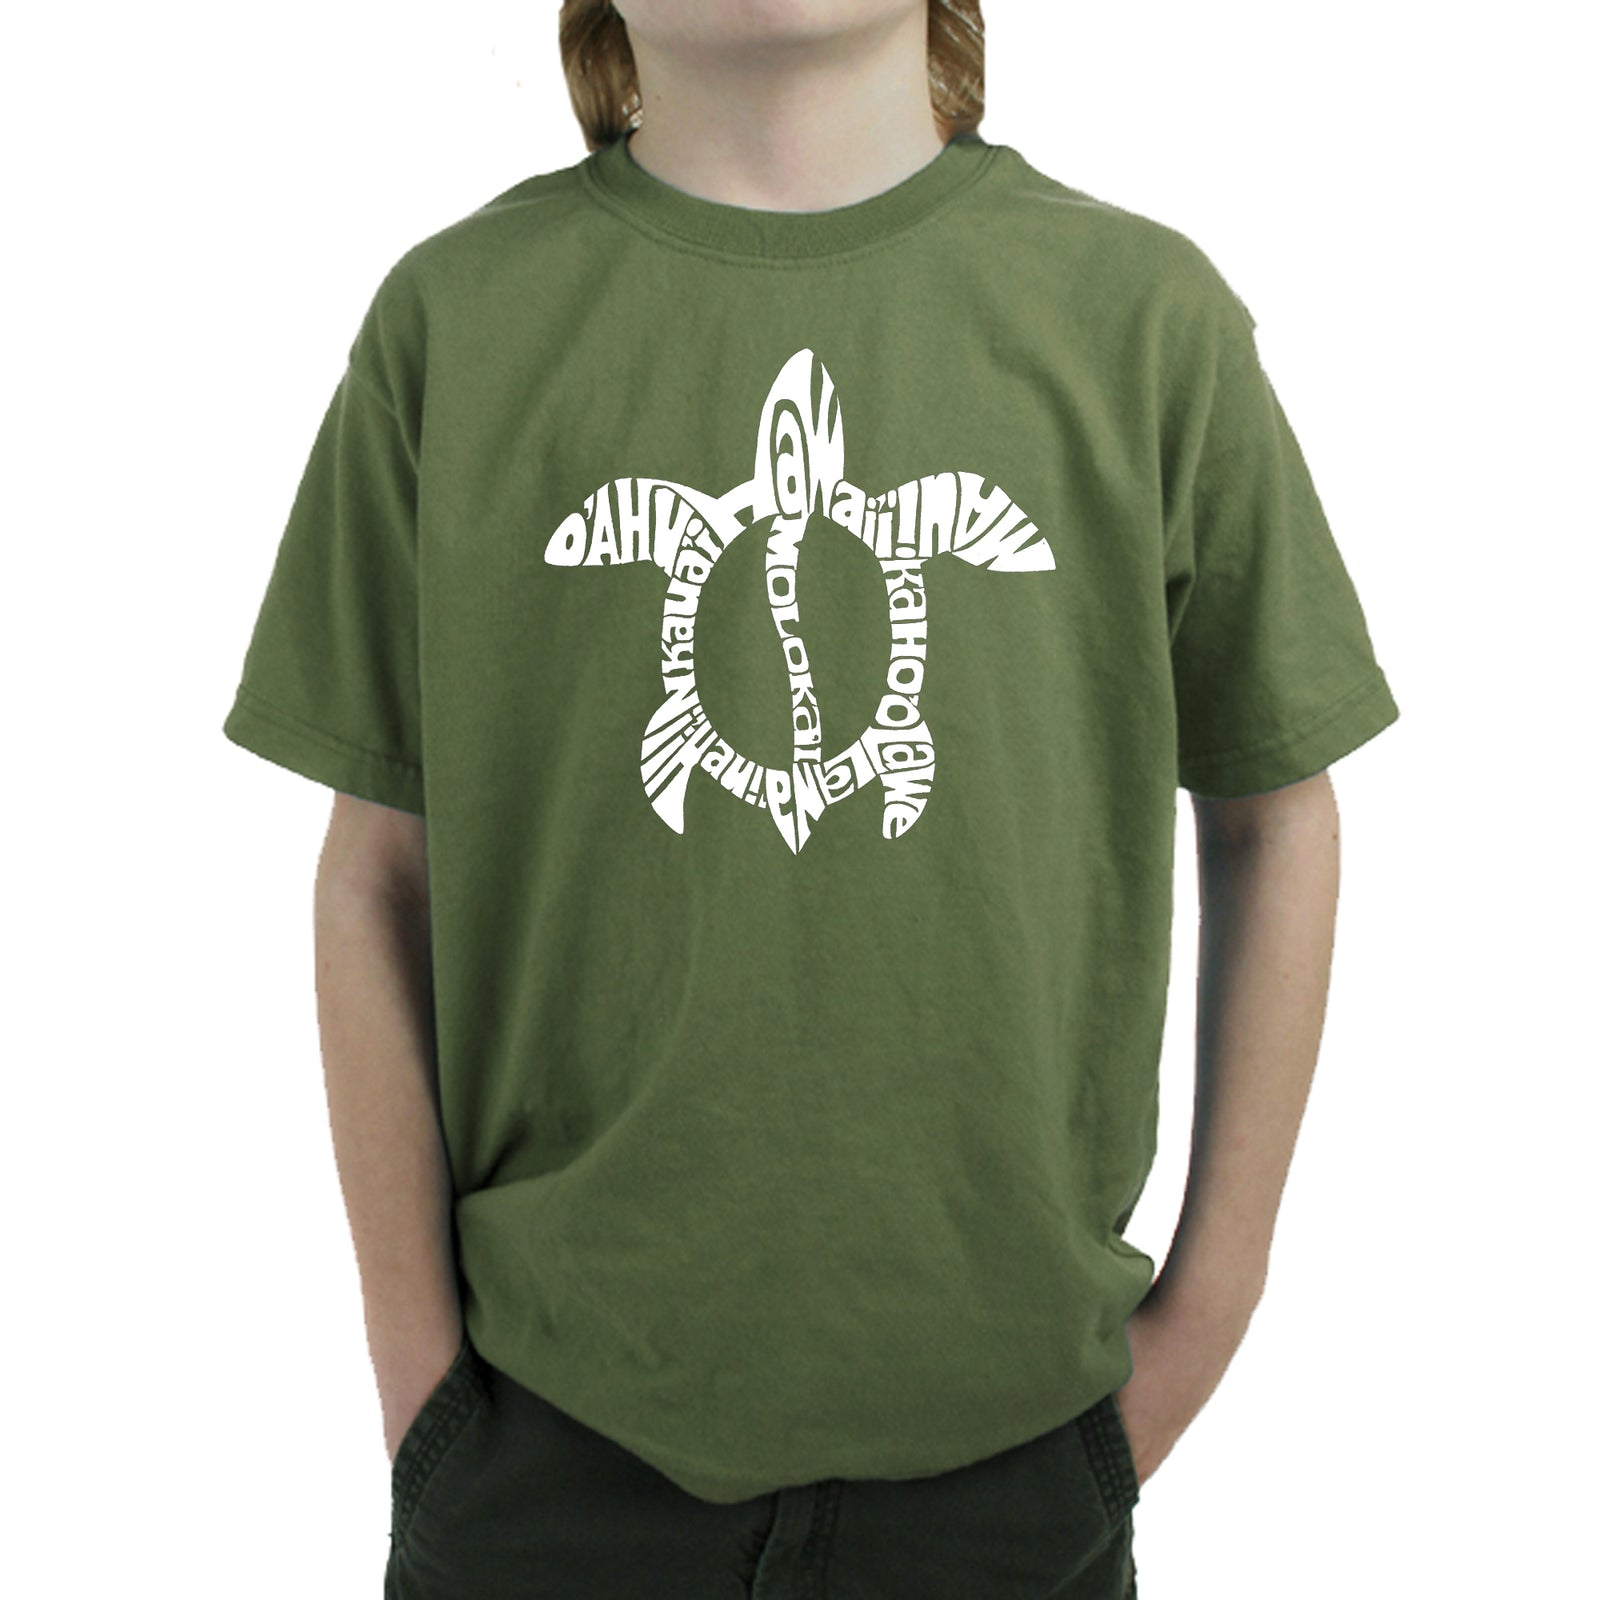 Boy's T-shirt - Honu Turtle - Hawaiian Islands